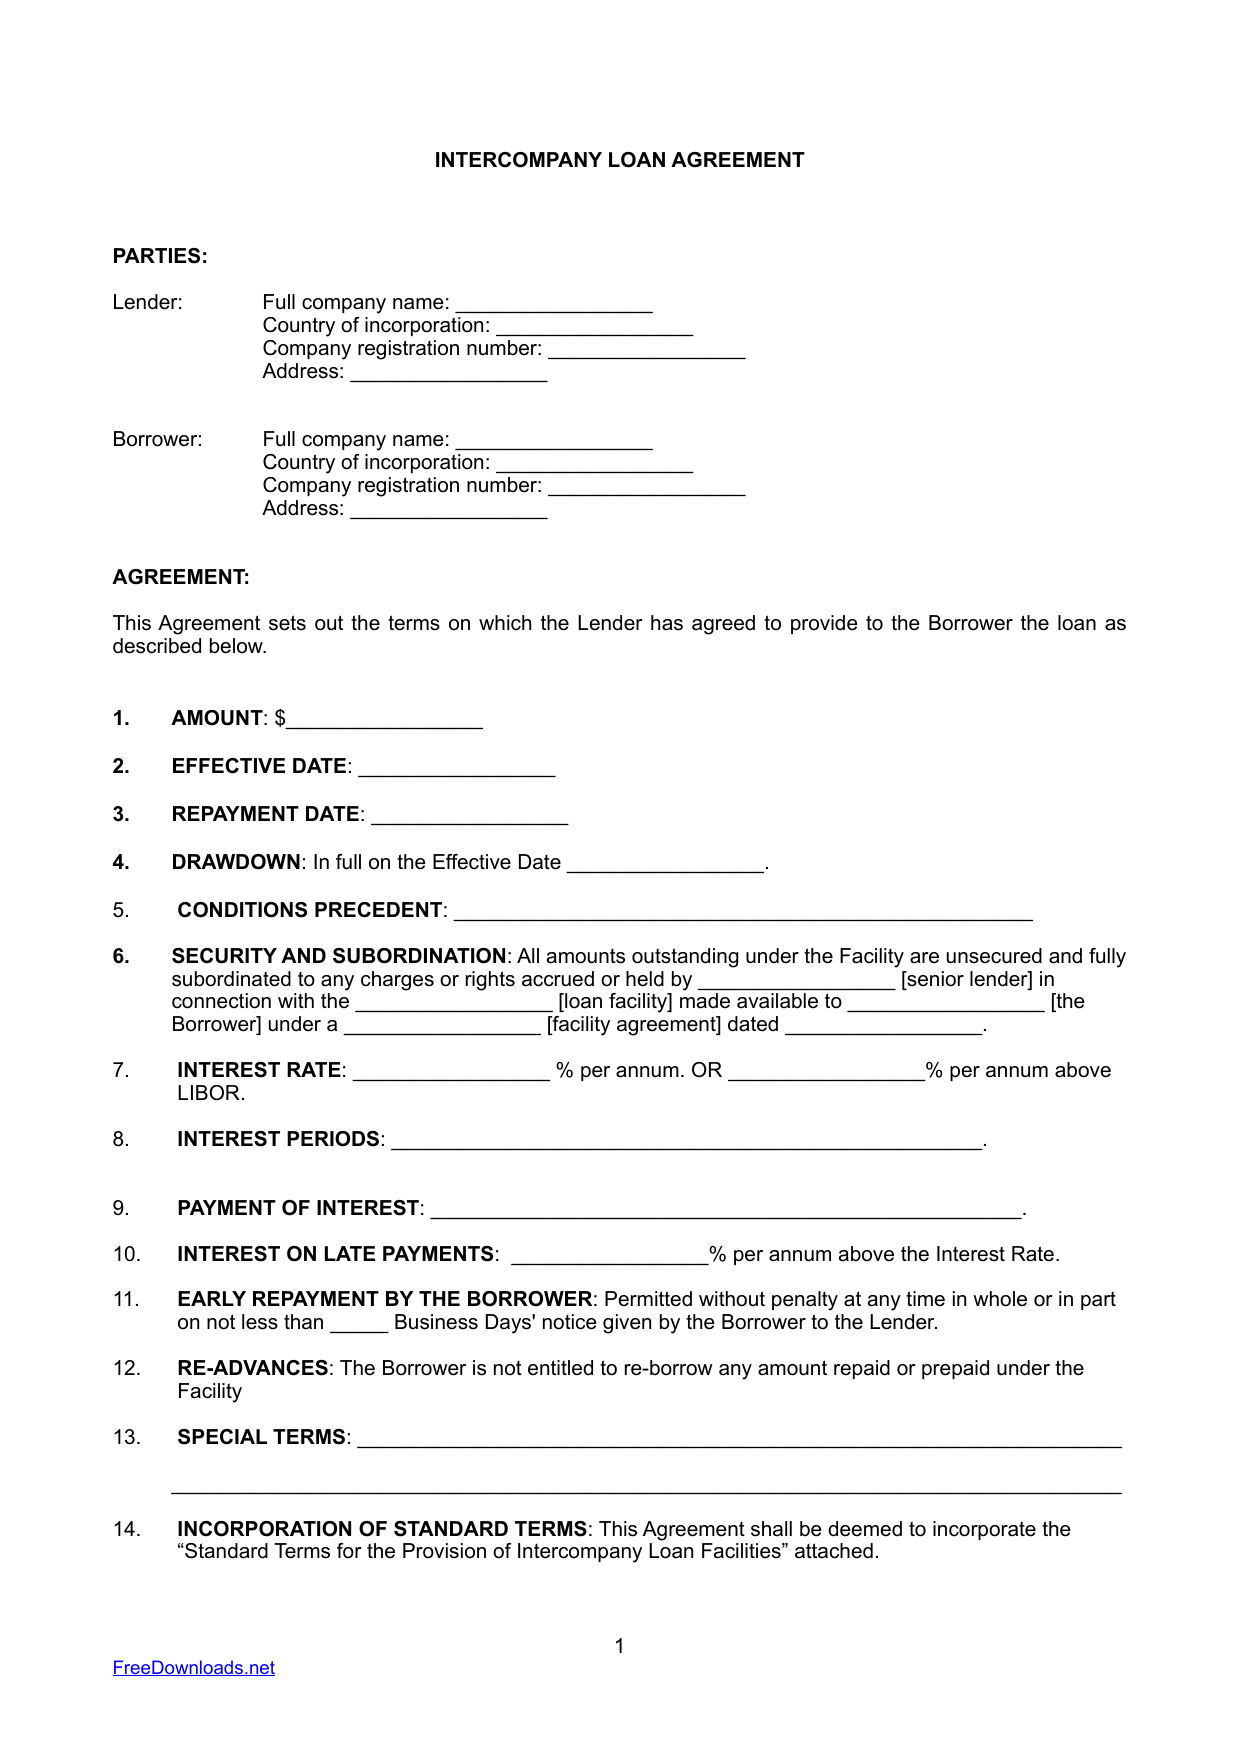 Download Intercompany Loan Agreement Template Pdf Rtf Word Freedownloads Net